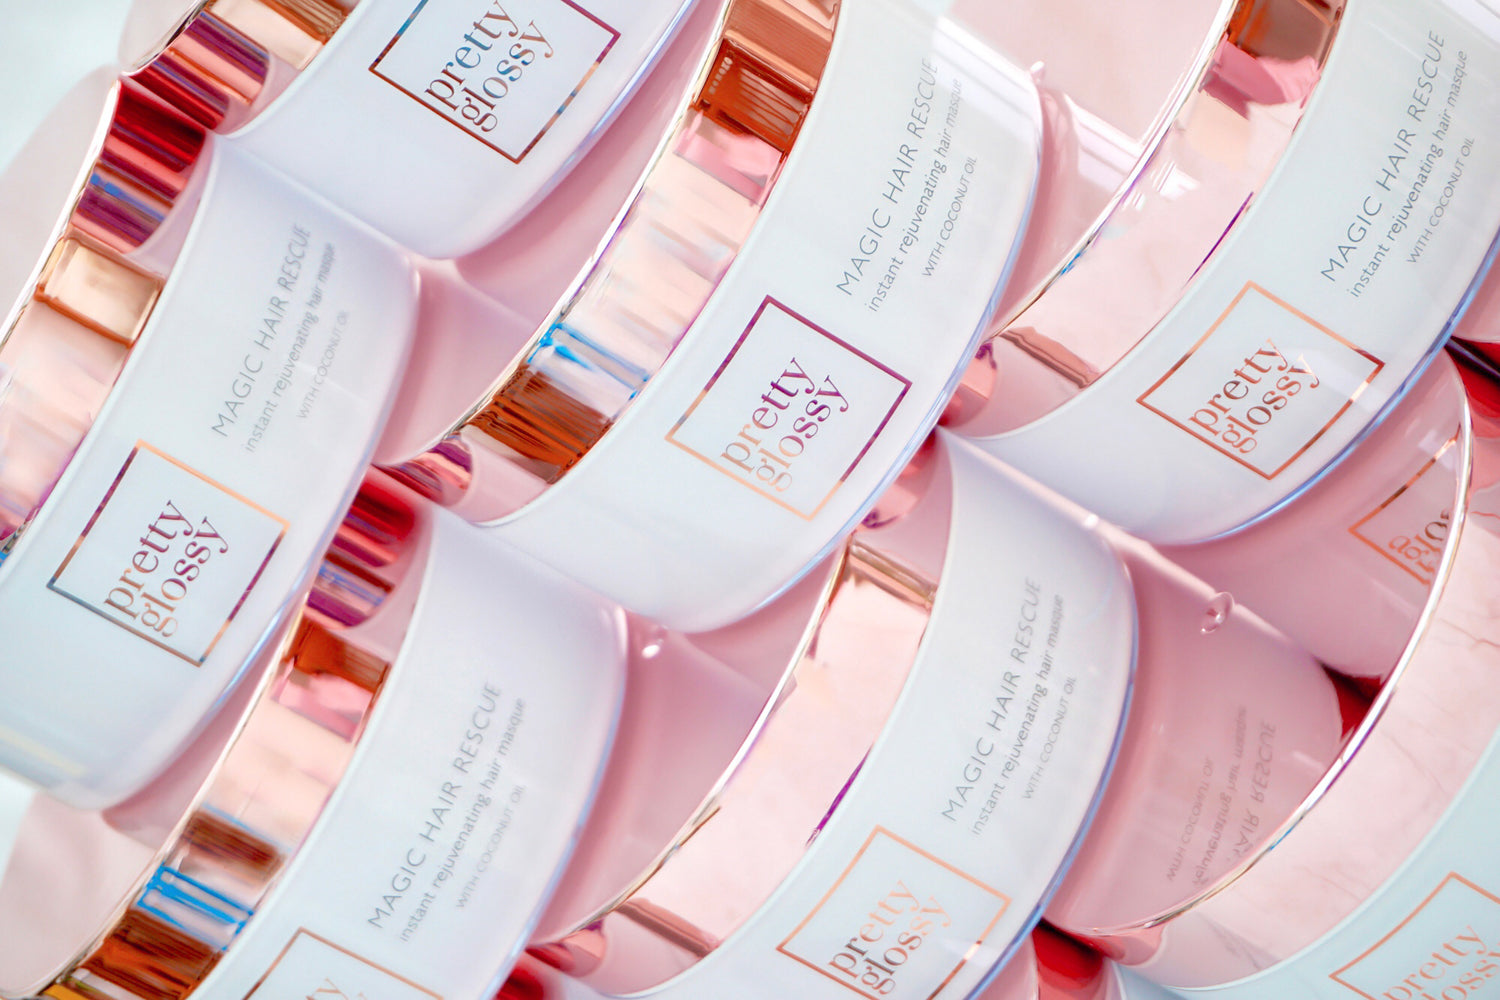 Pretty Glossy Magic Hair Rescue Masque Rose Gold Jar Packaging